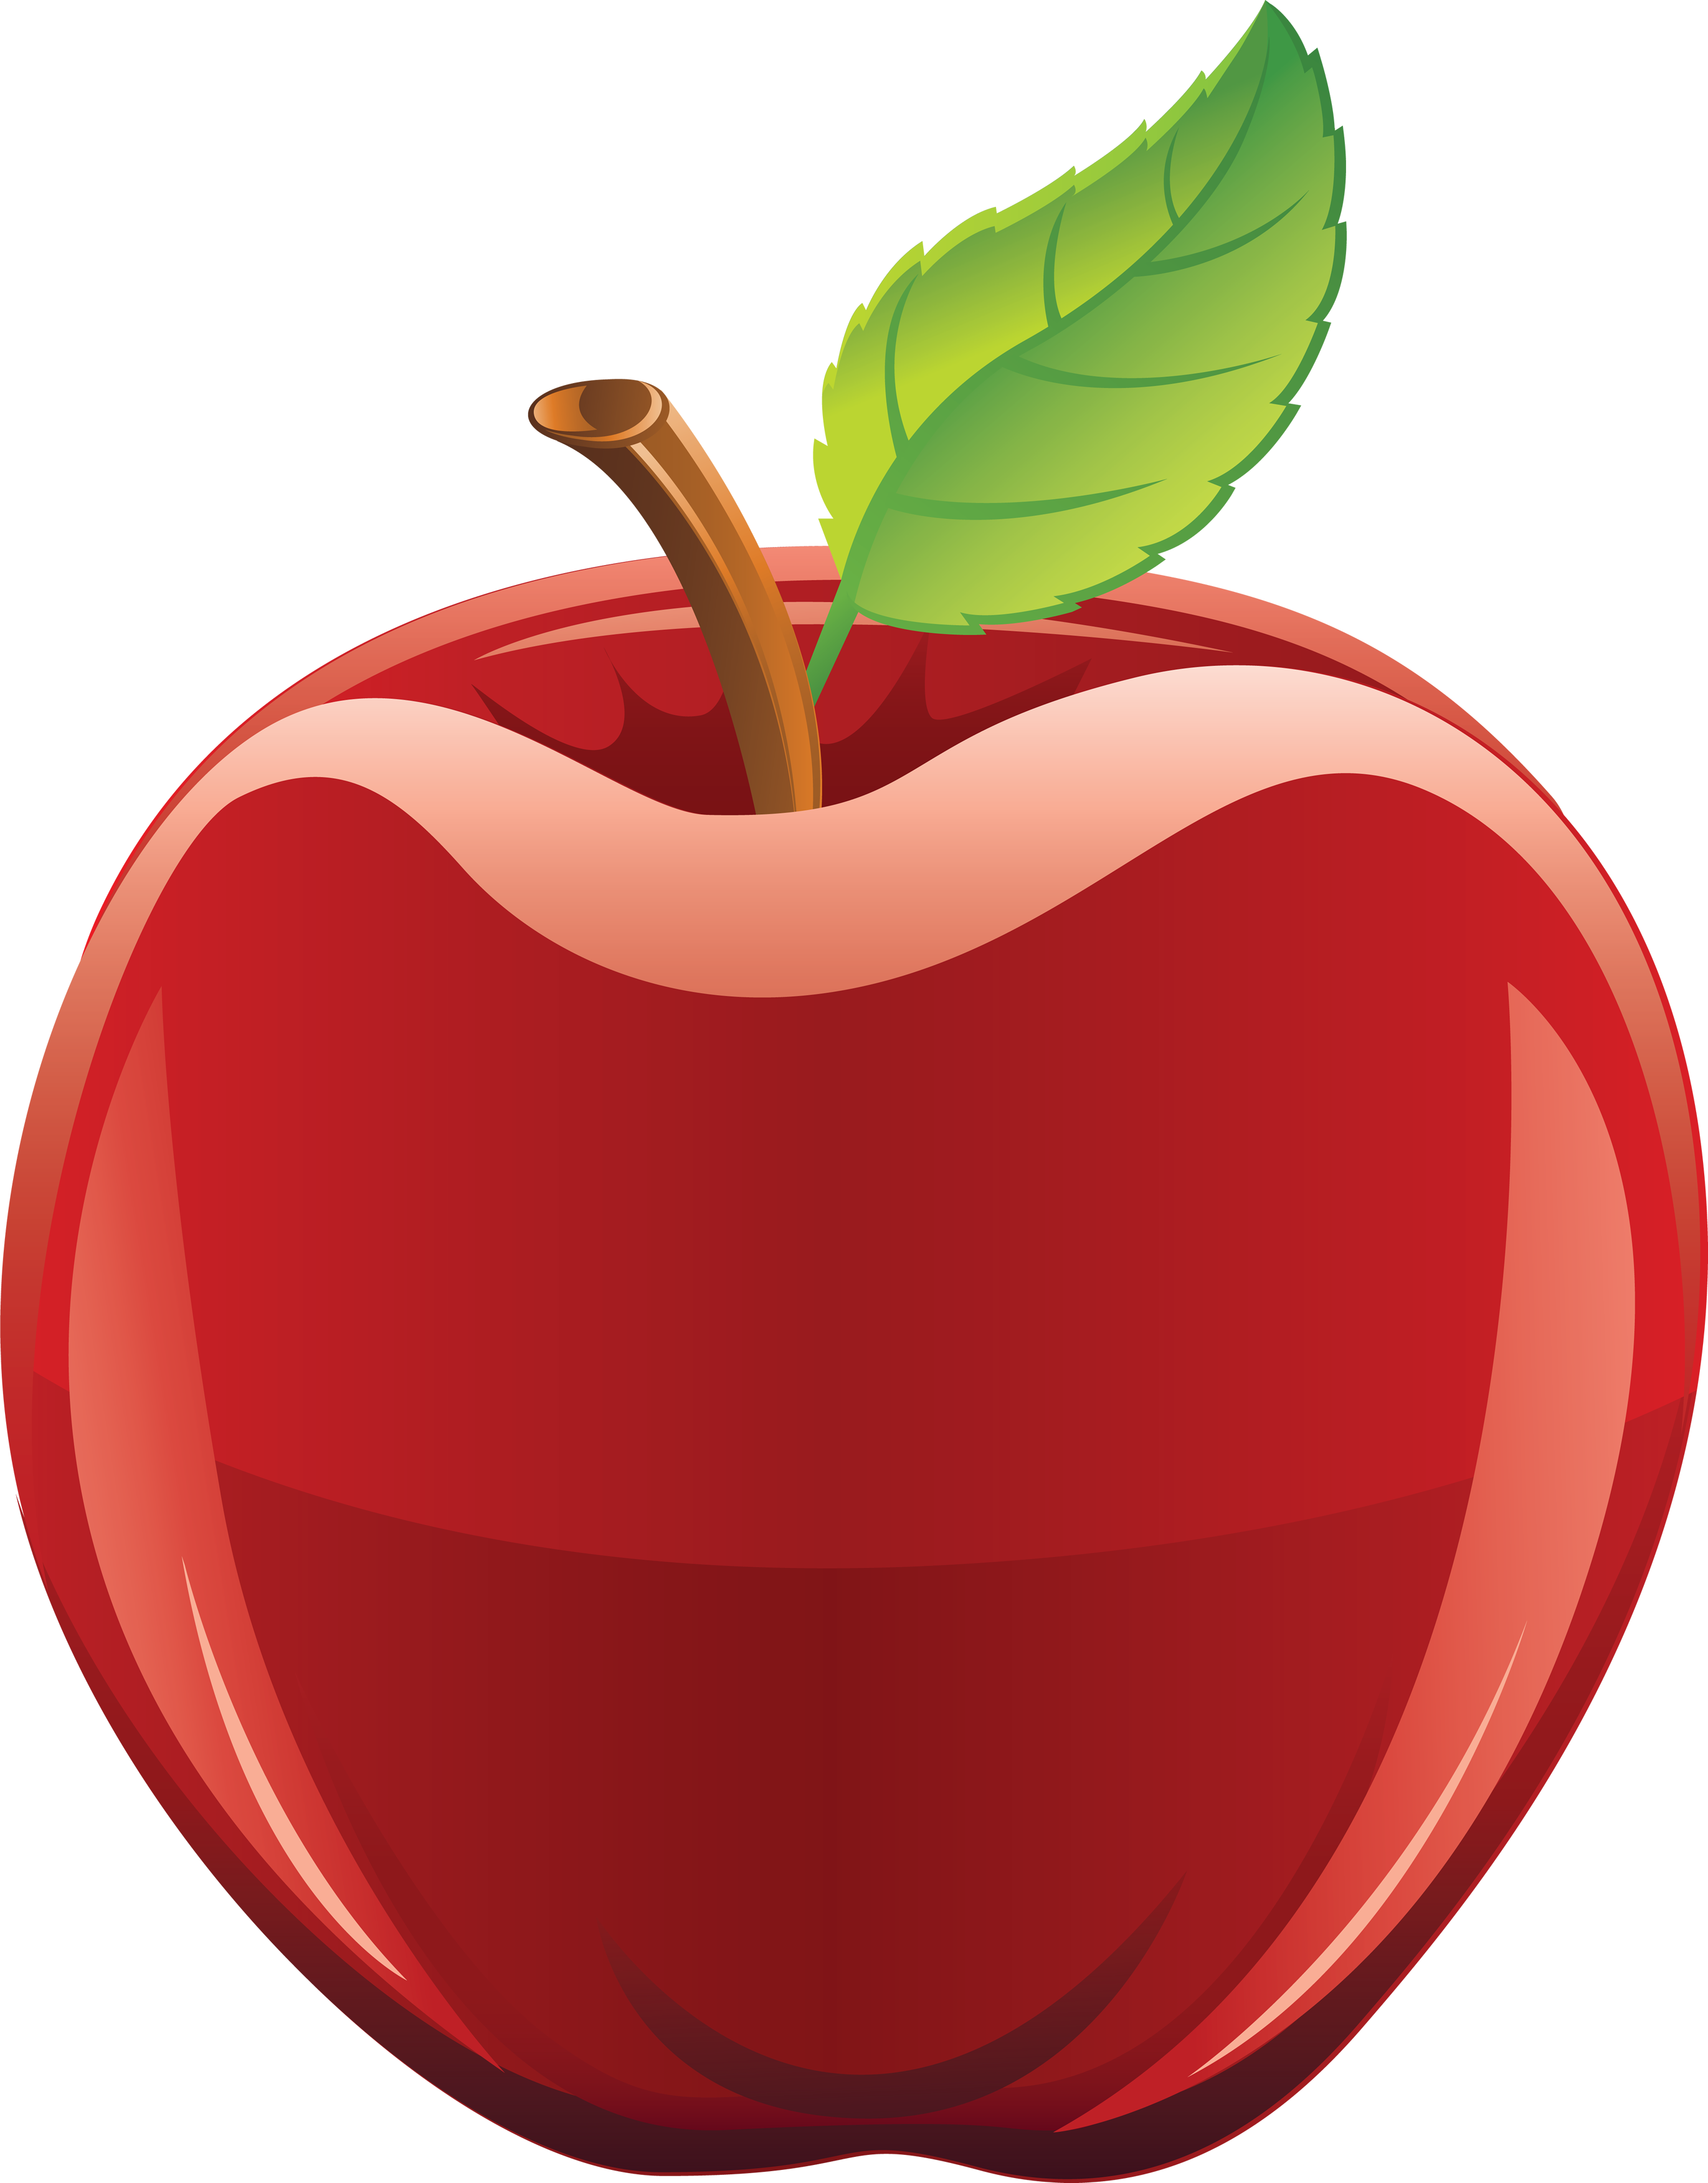 Red apple clipart free clipart images-Red apple clipart free clipart images-18